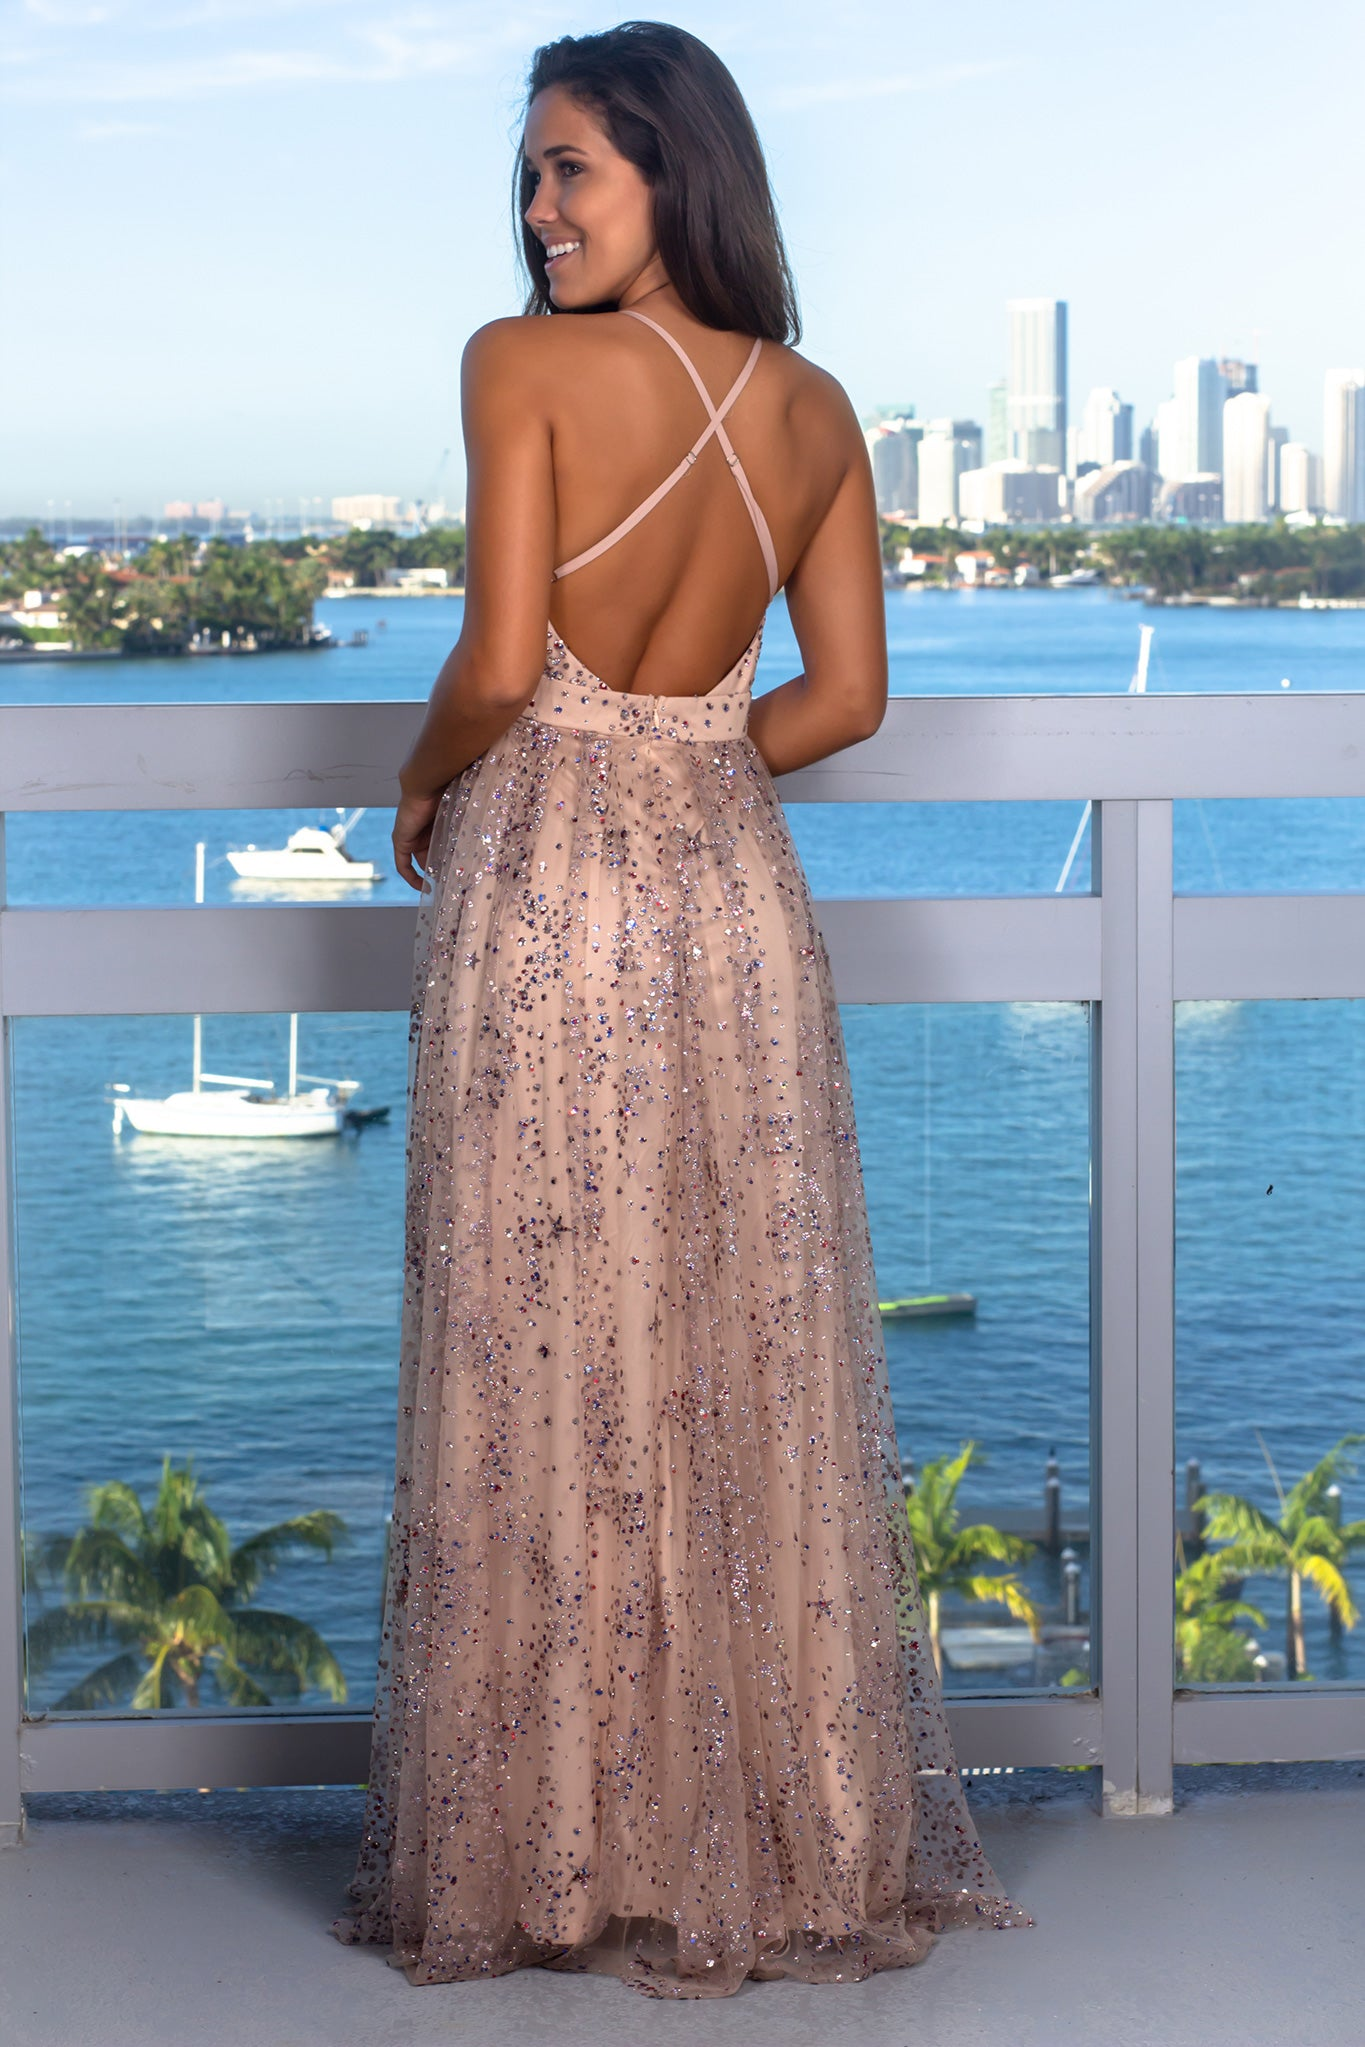 Nude Maxi Dress with Star Sequins